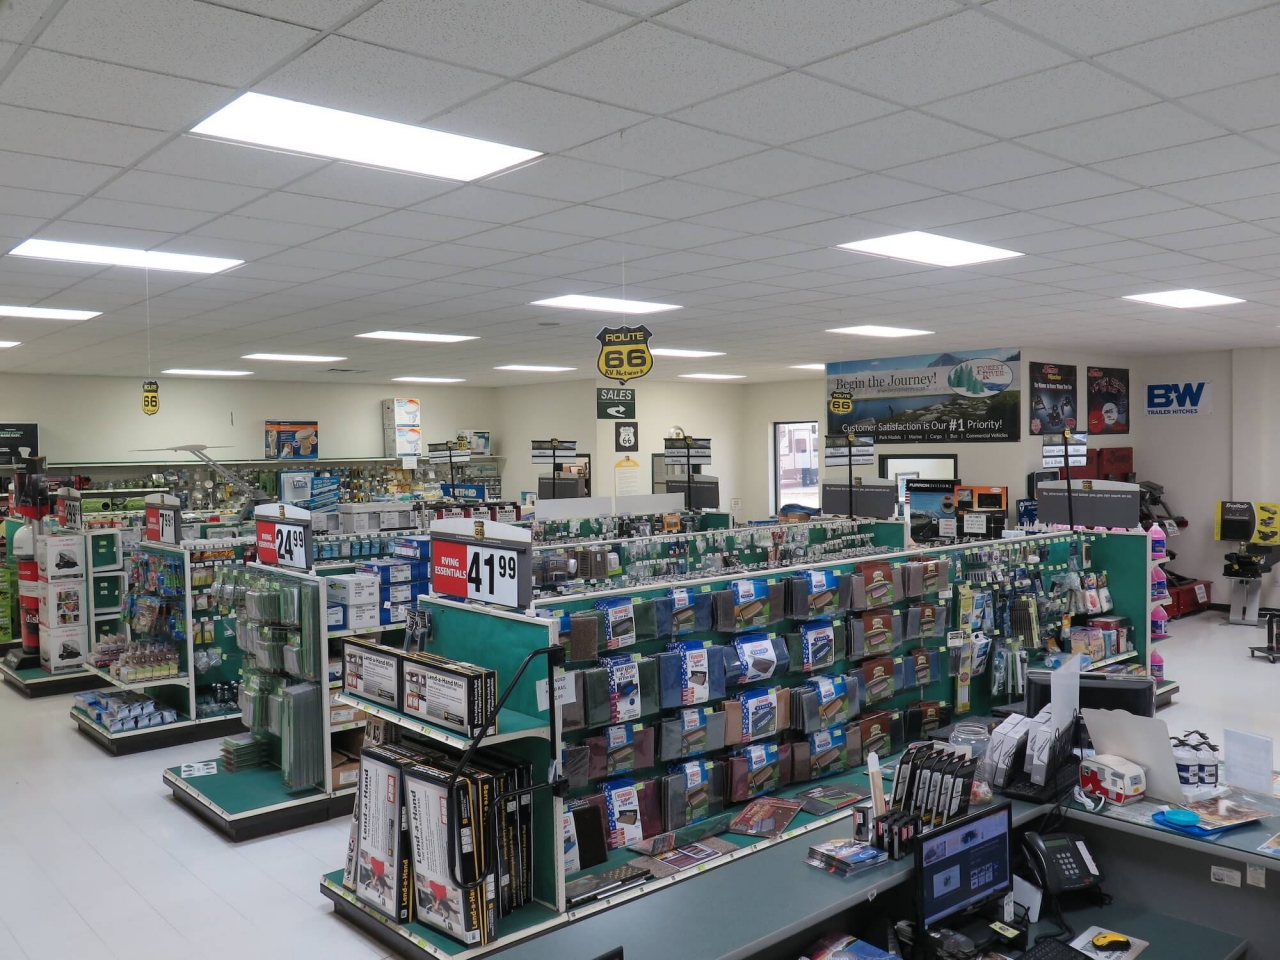 inside parts store